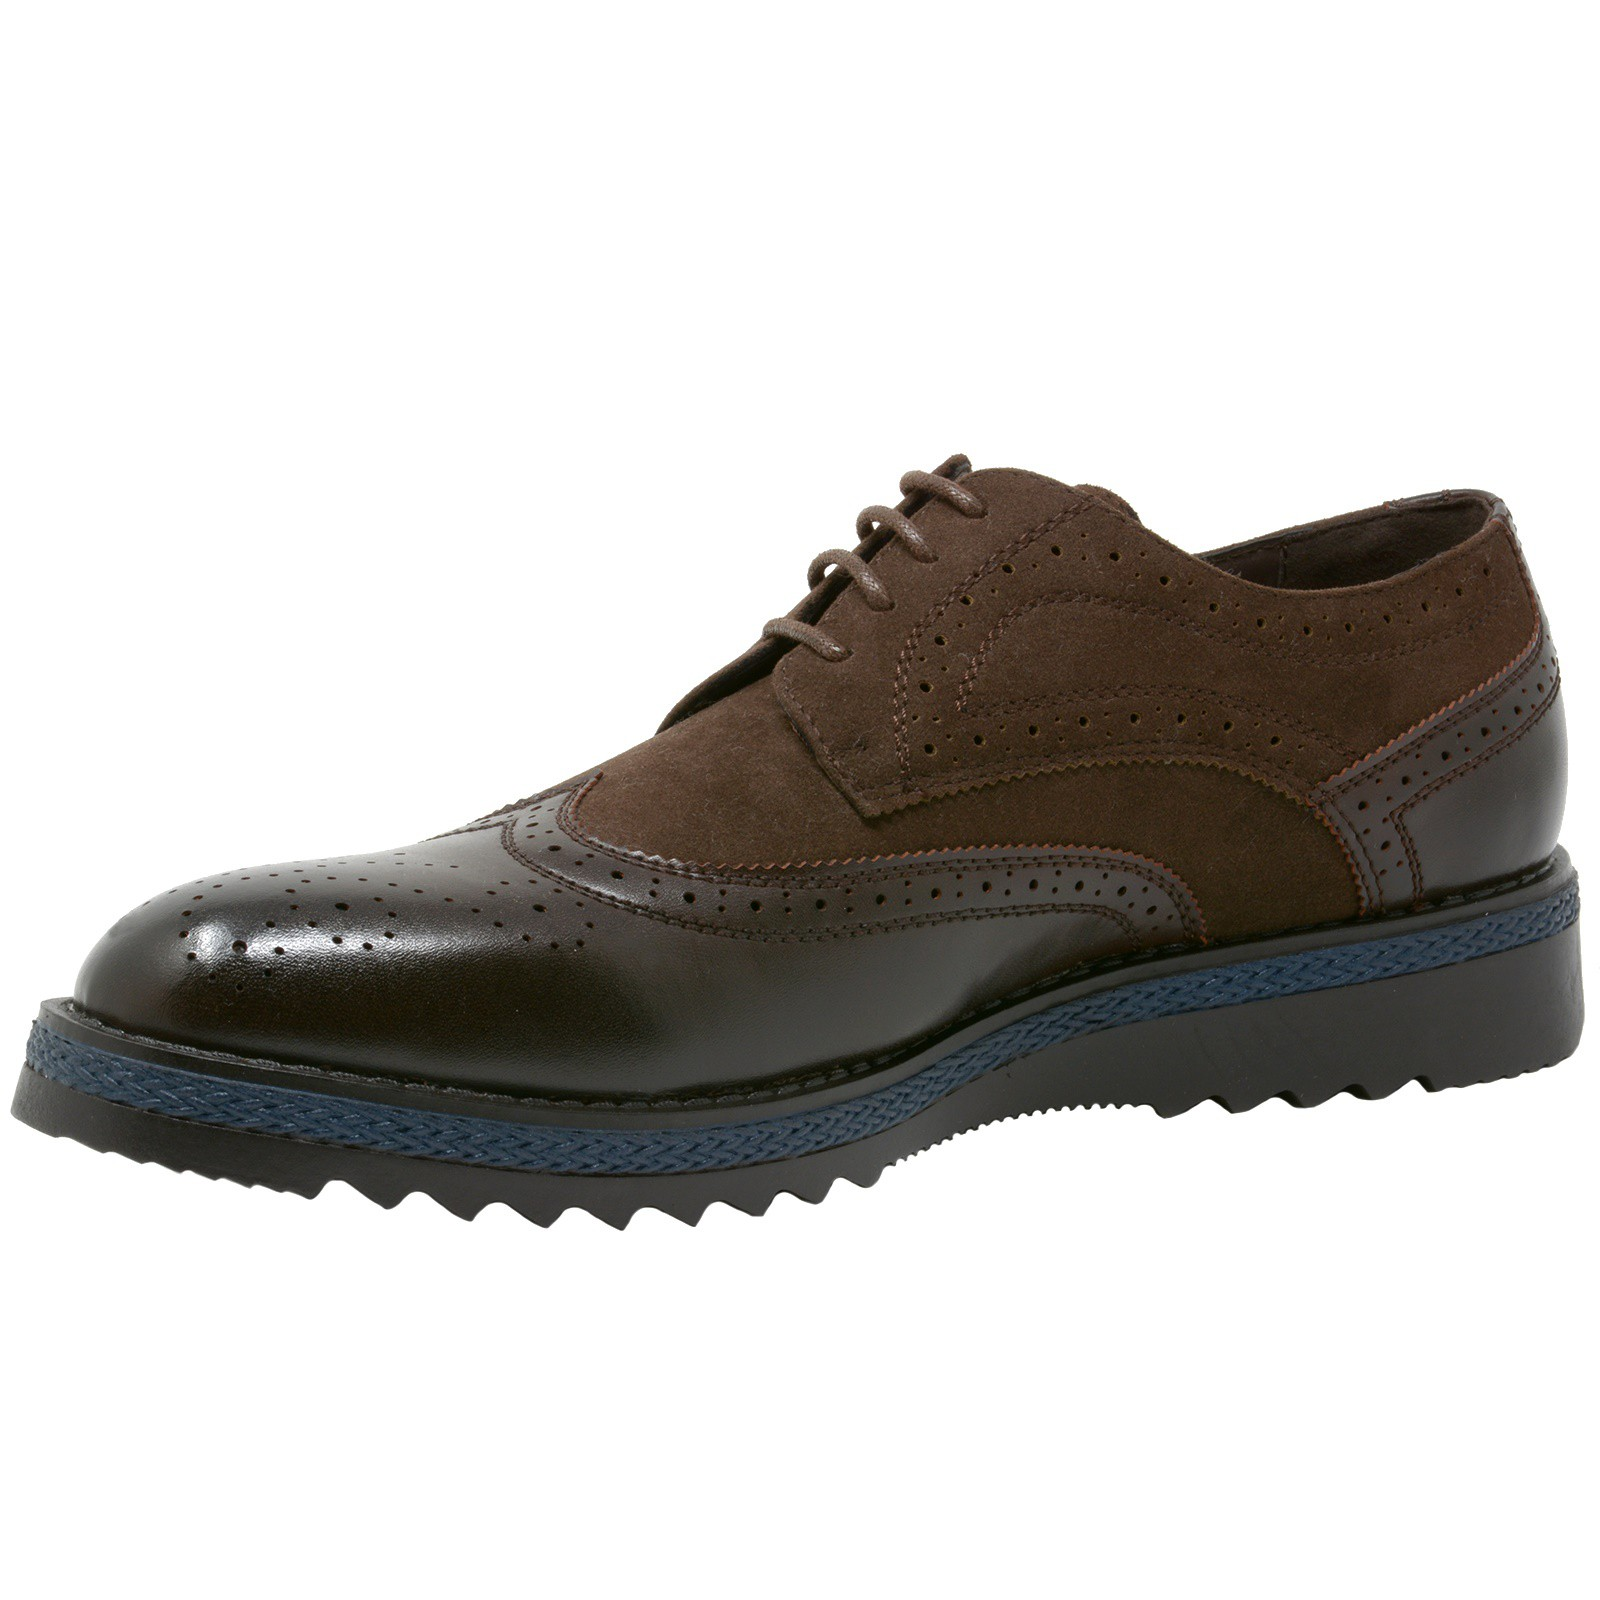 Alpine-Swiss-Alec-Mens-Wingtip-Shoes-1-5-Ripple-Sole-Leather-Insole-amp-Lining thumbnail 14